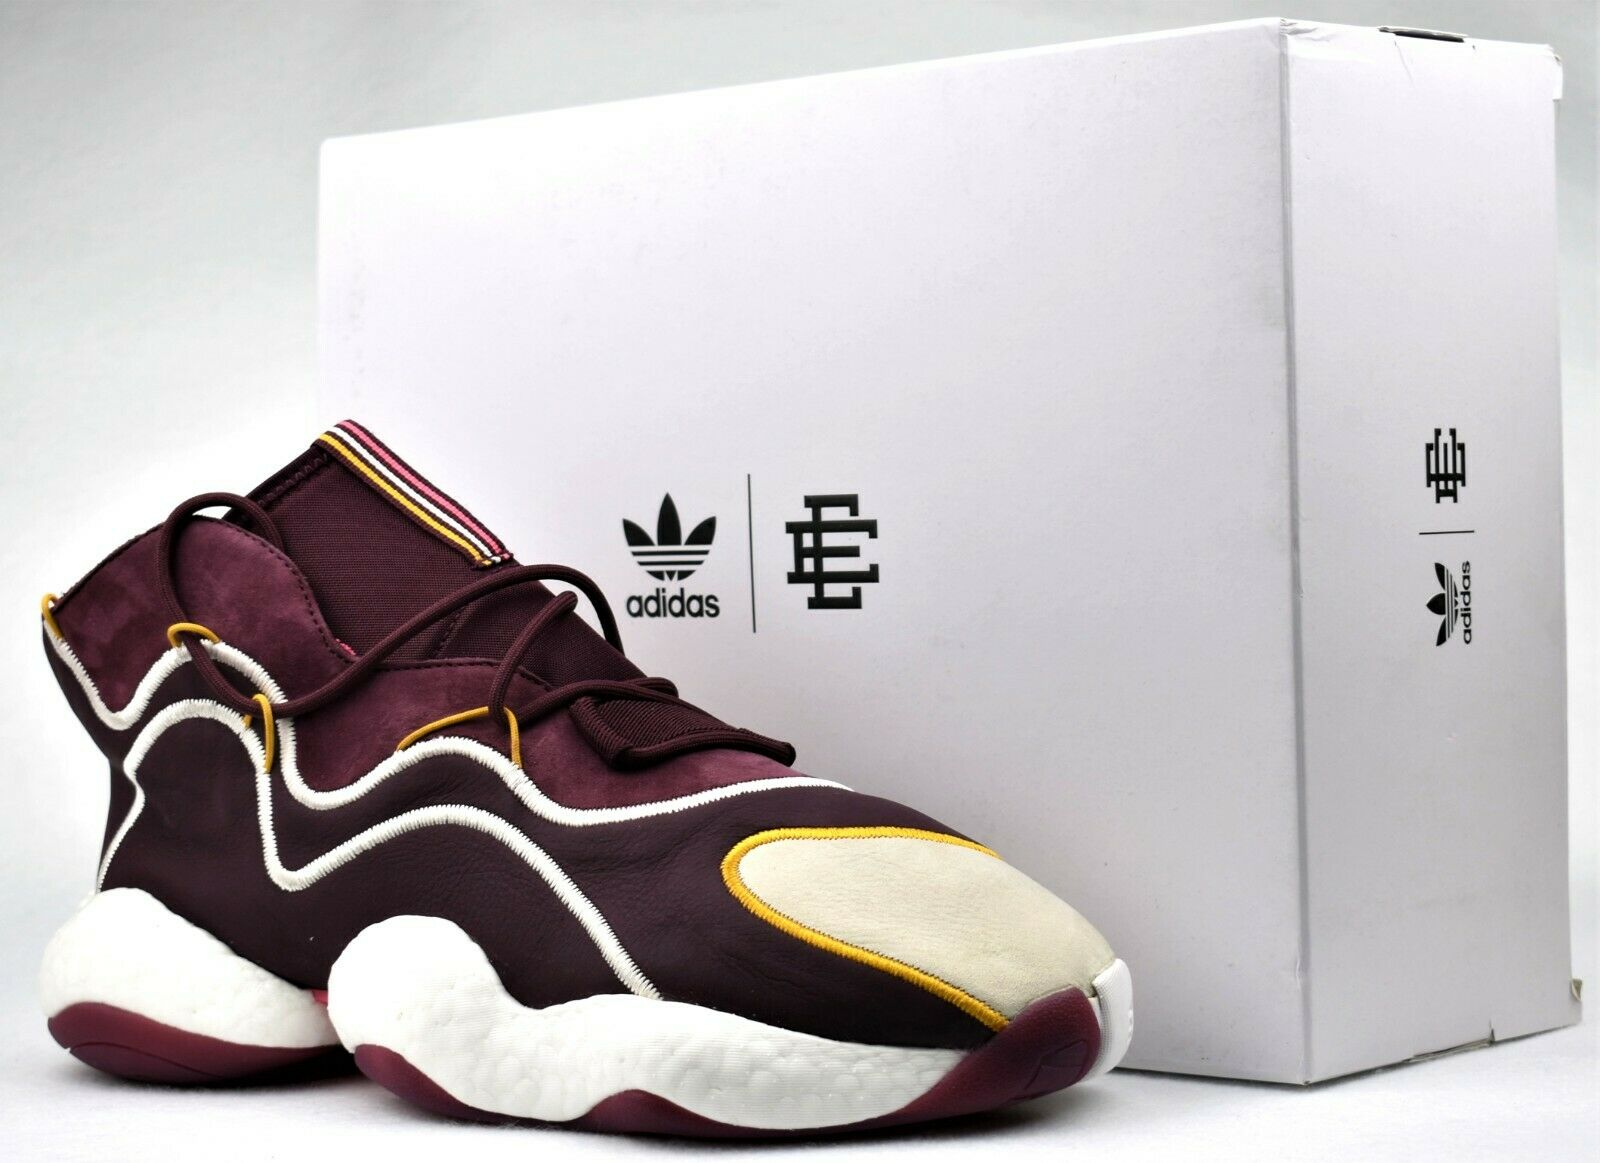 ADIDAS CRAZY BYW I EE - New Men's Sneakers Eric Emanuel shoes BD7242 Mult Sizes